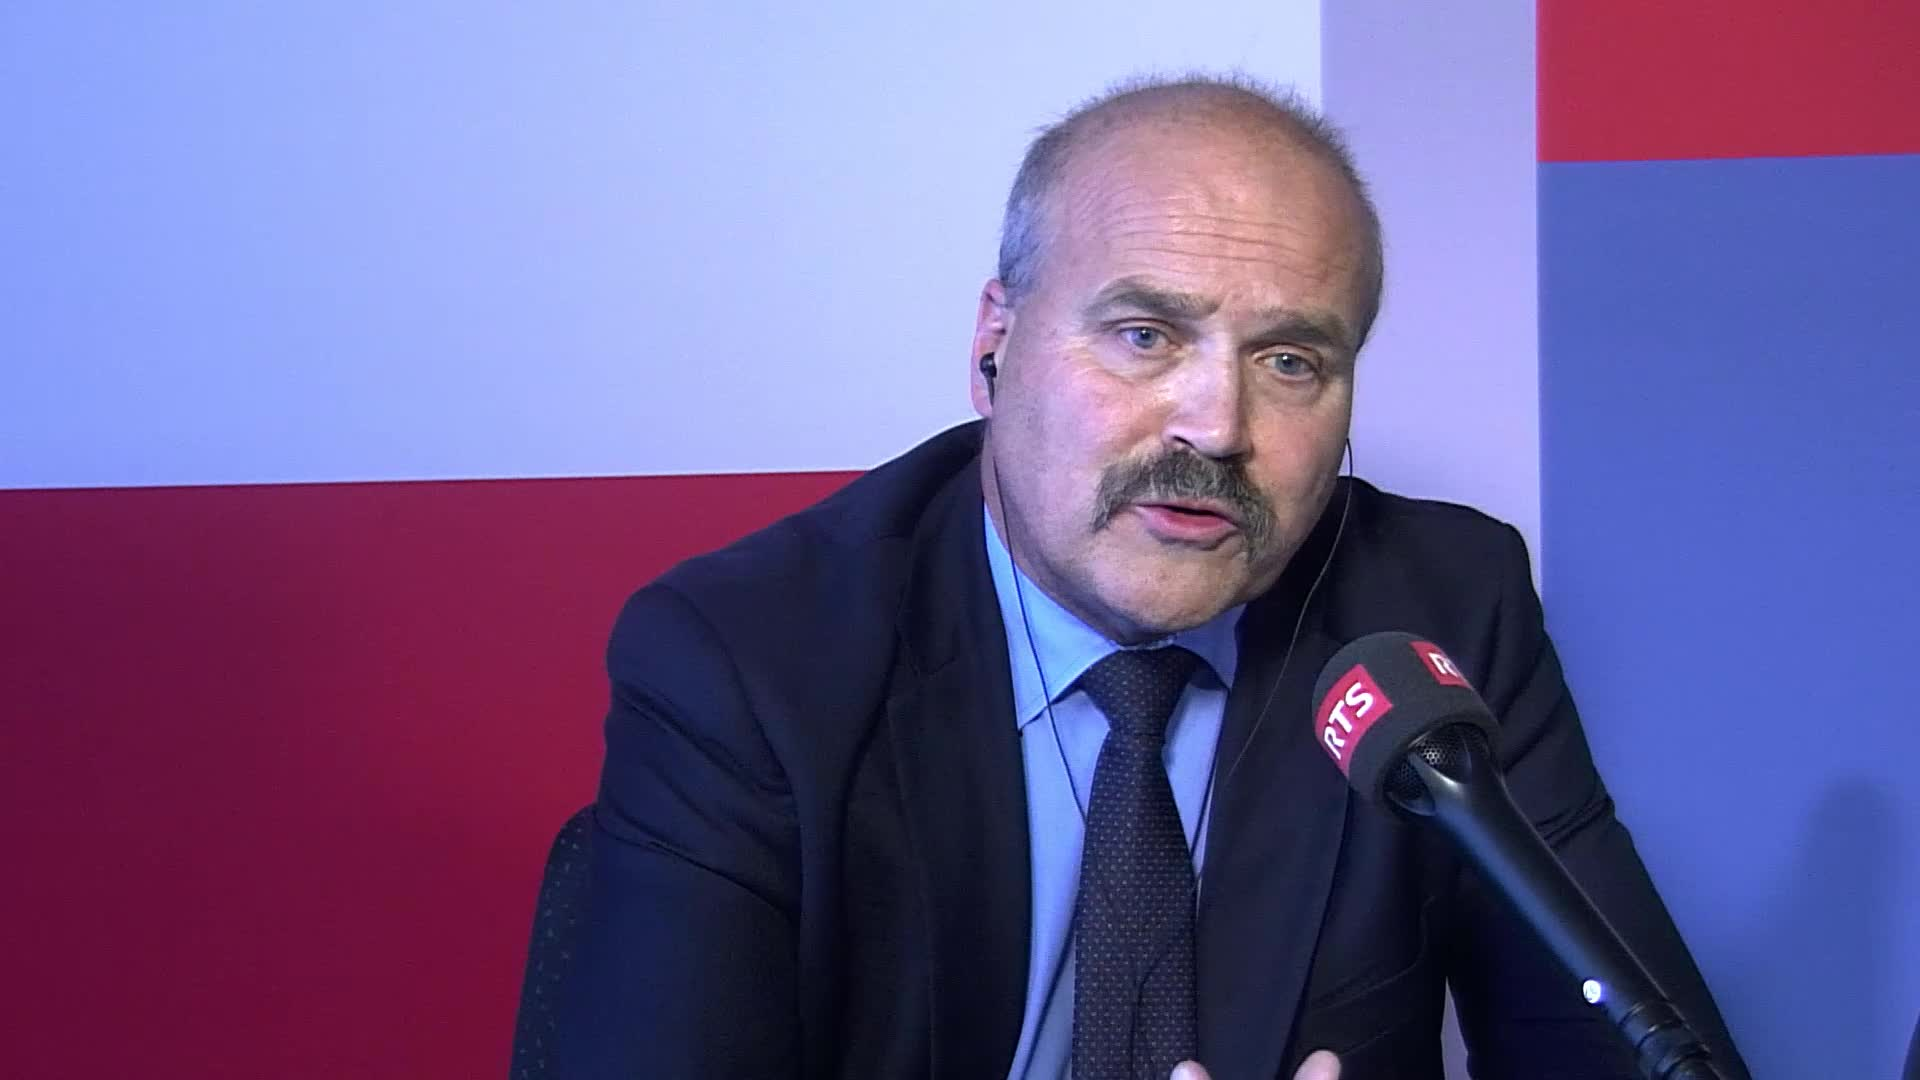 Le National maintient son contre-projet à l'initiative sur les multinationales responsables: interview de Philippe Bauer